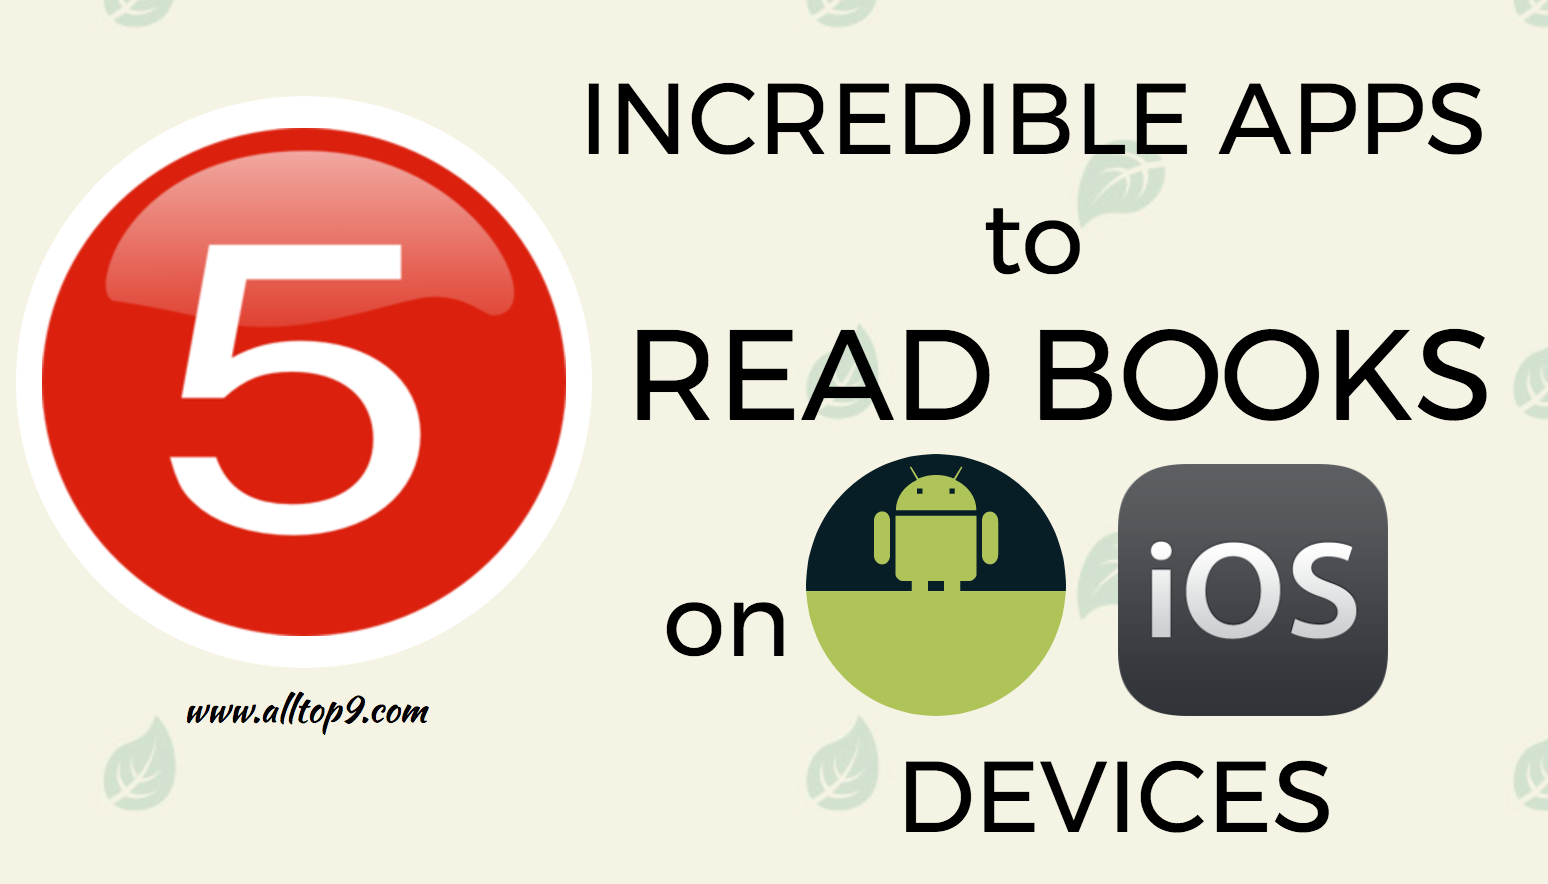 5-incredible-apps-read-books-on-mobile-tablet-ios-android-devices